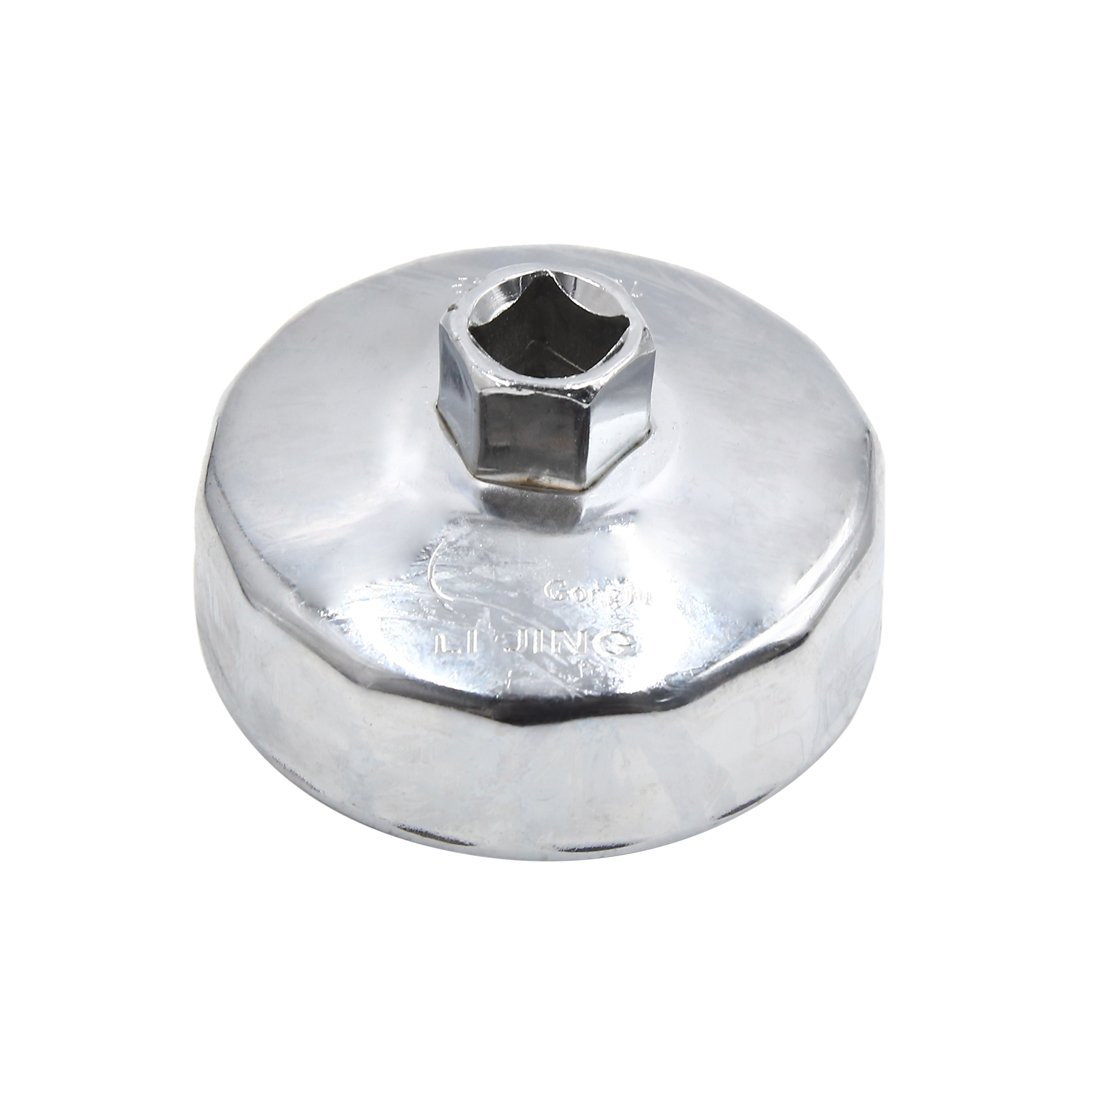 uxcell Steel 76mm 14 Flutes Car Oil Filter Cap Wrench Socket Housing Remover Tool